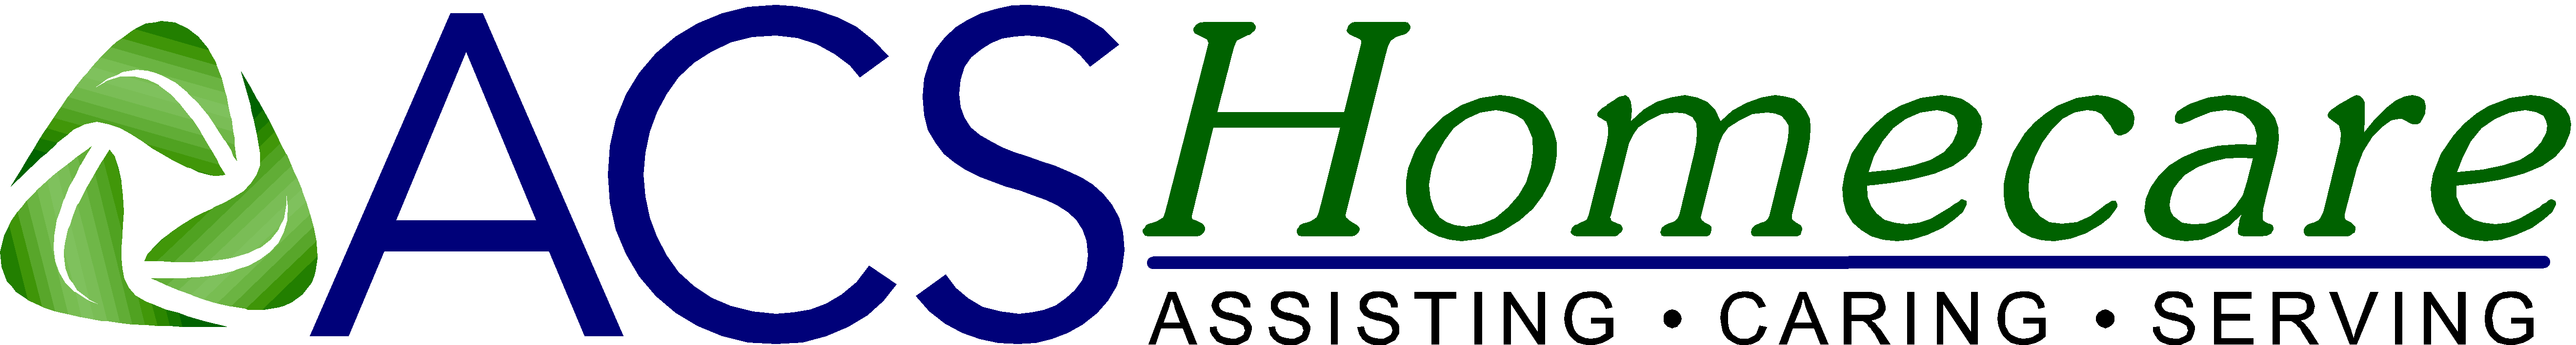 cropped-Horizontal-logo-2